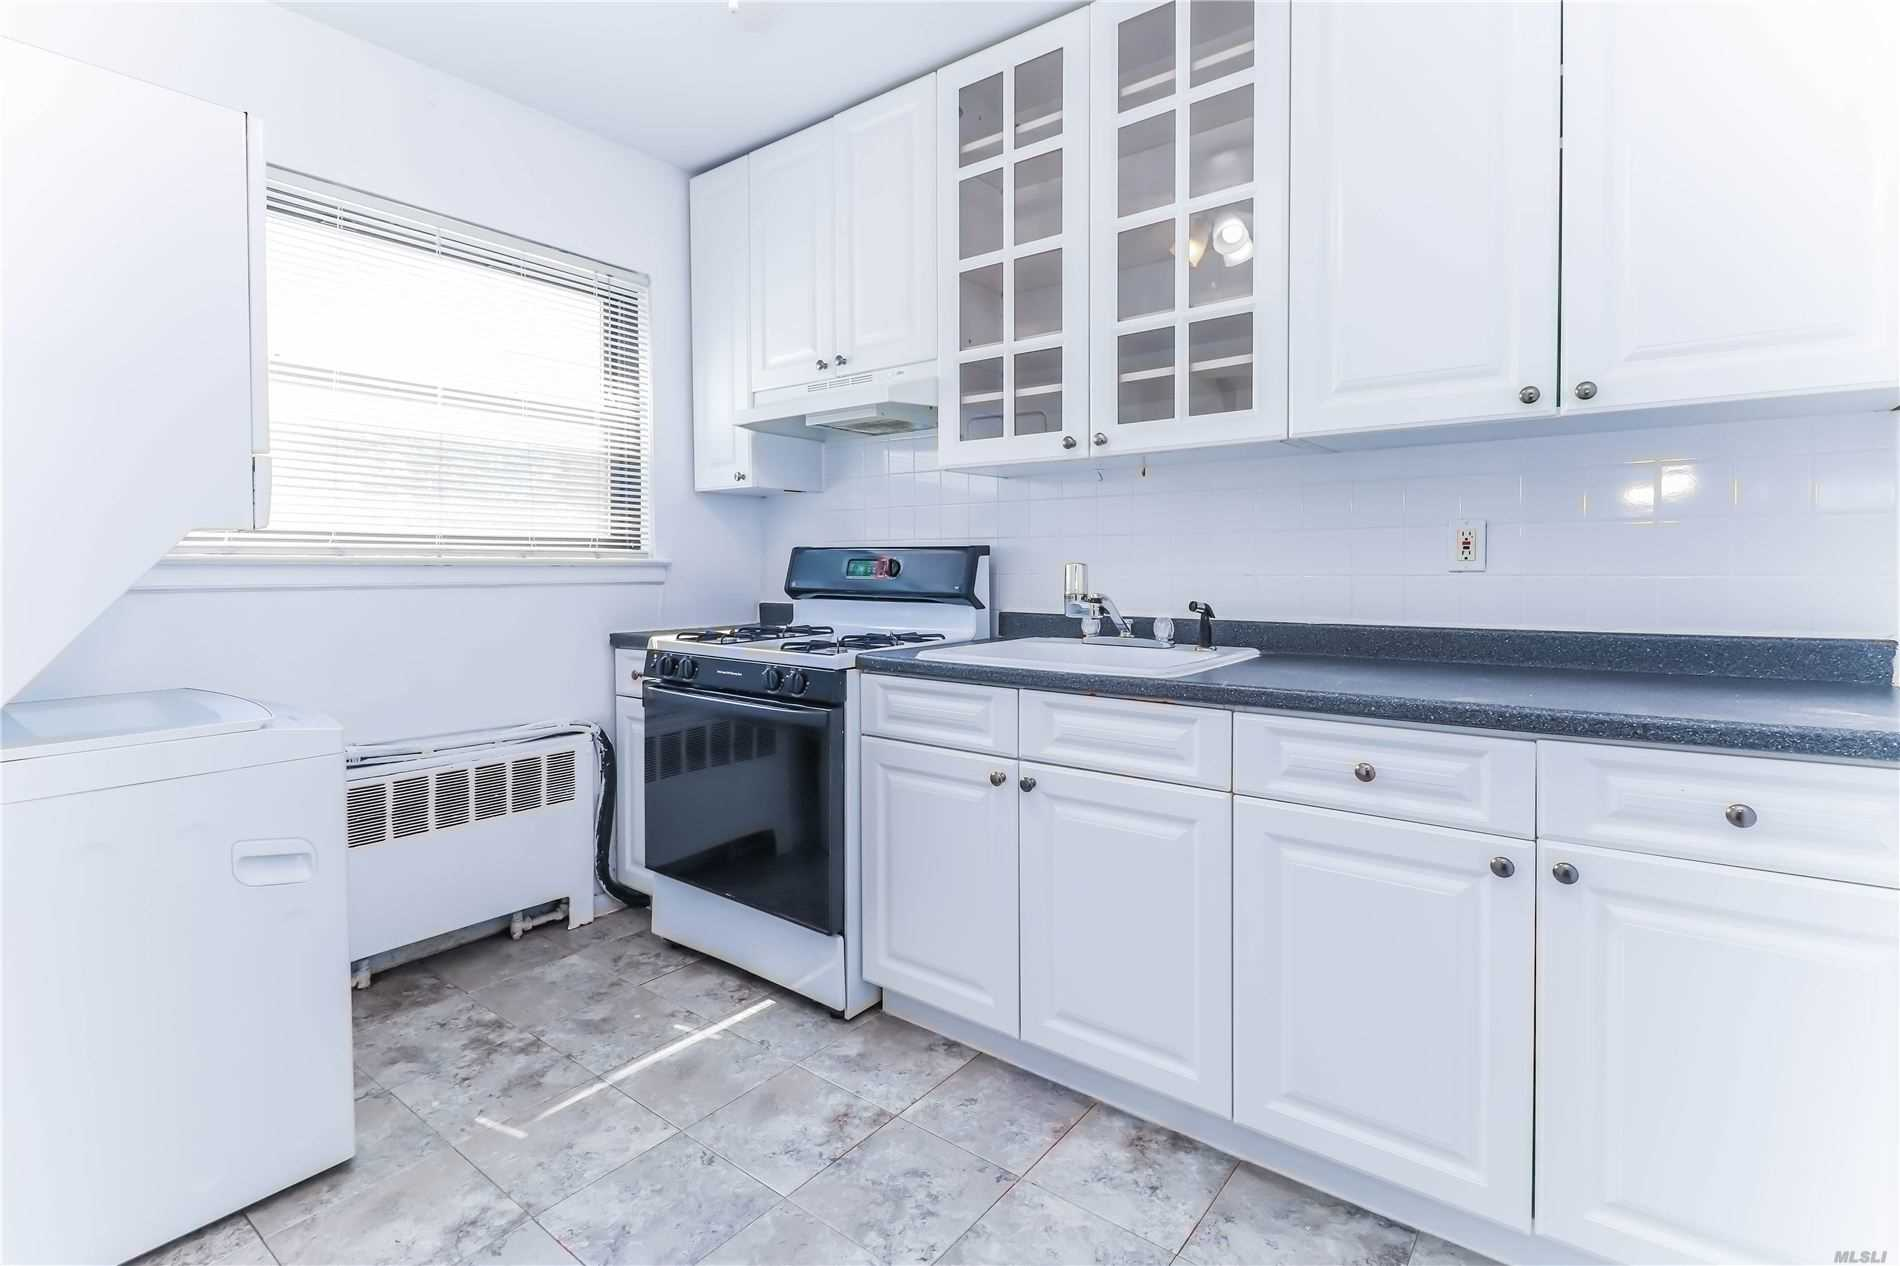 Renovated 2 Bedroom. Located in Thriving Neighborhood of Bayside with acres of park land, trees and walking paths. Windsor Oaks is often described as Living Inside and Oasis. Convenient to public transpotation and highways. Free outdoor parking available as well as indoor garage for rent. A Must See!